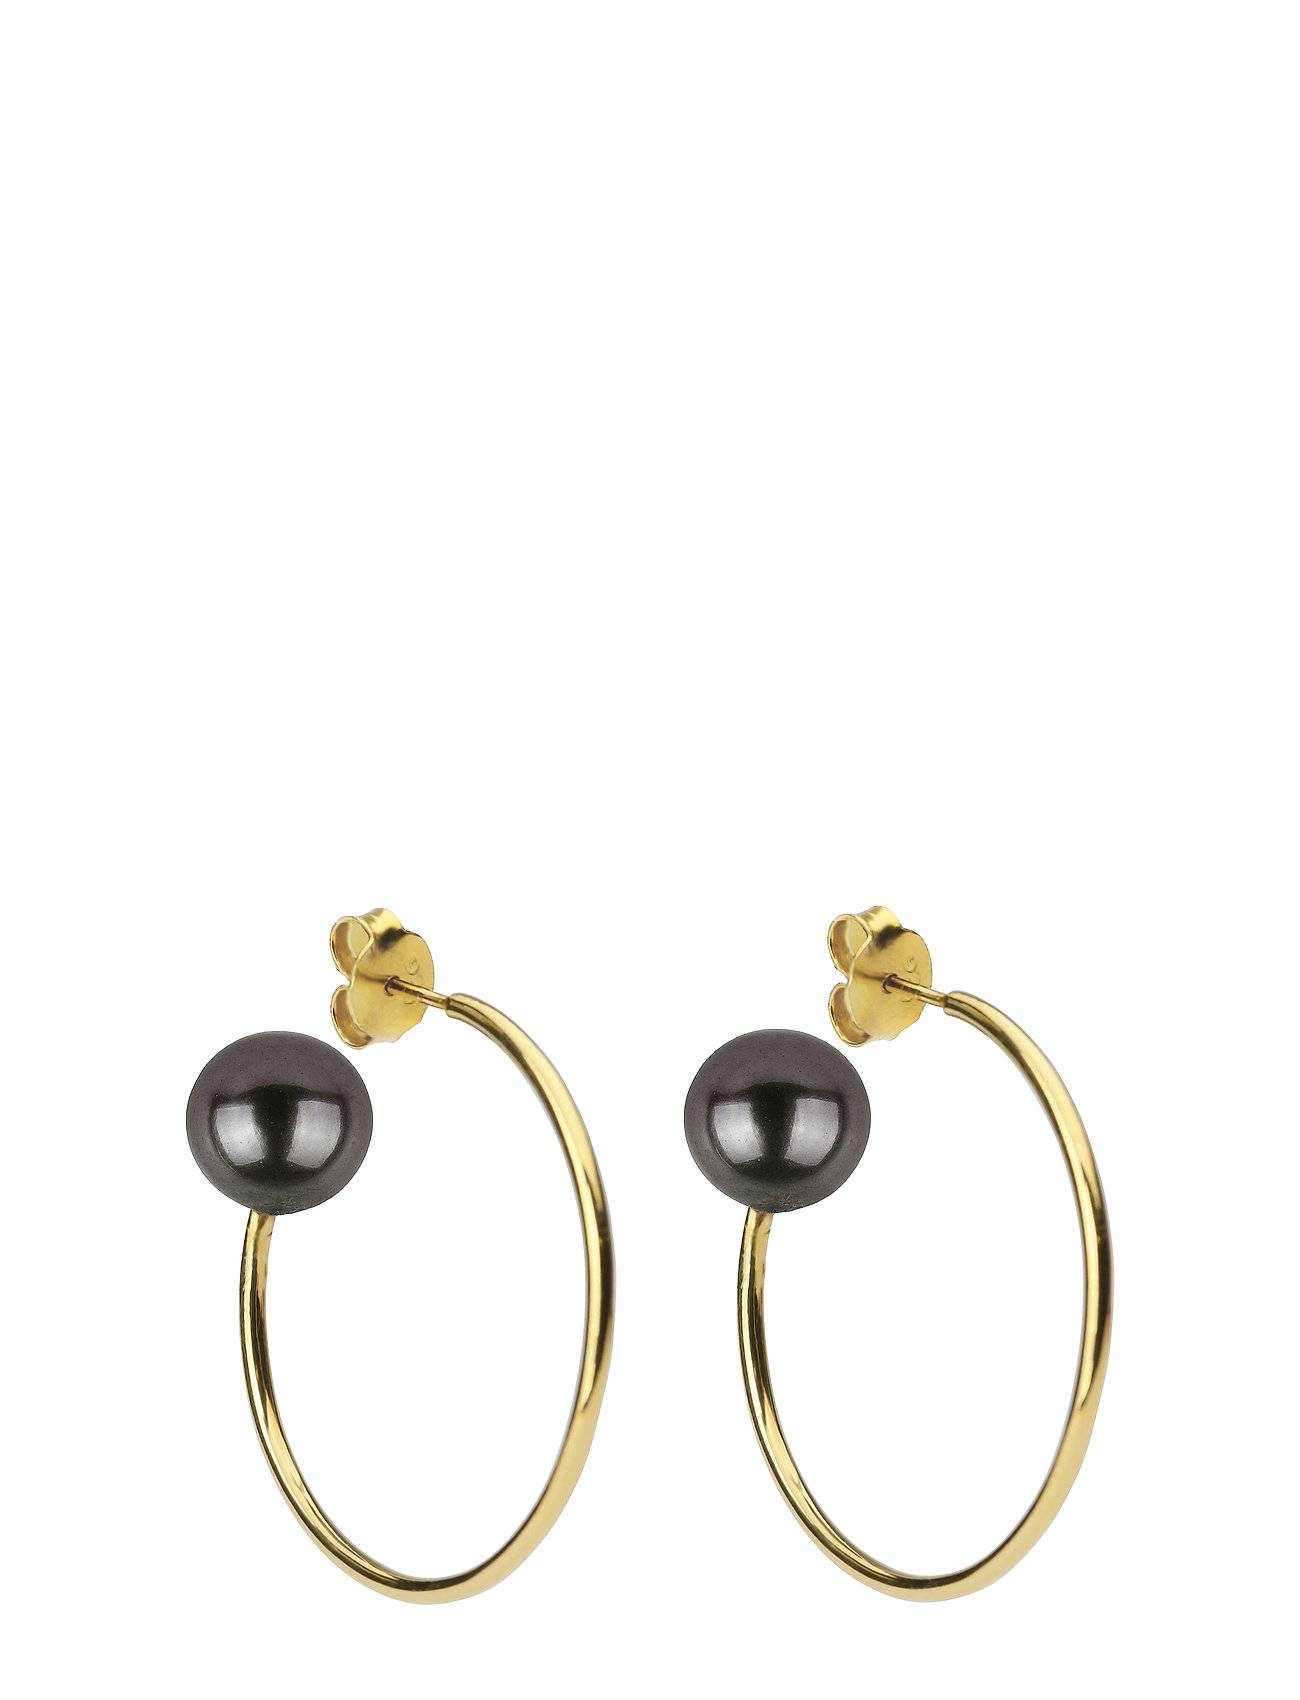 Syster P Pearly Big Hoops Gold Black Accessories Jewellery Earrings Hoops Kulta Syster P